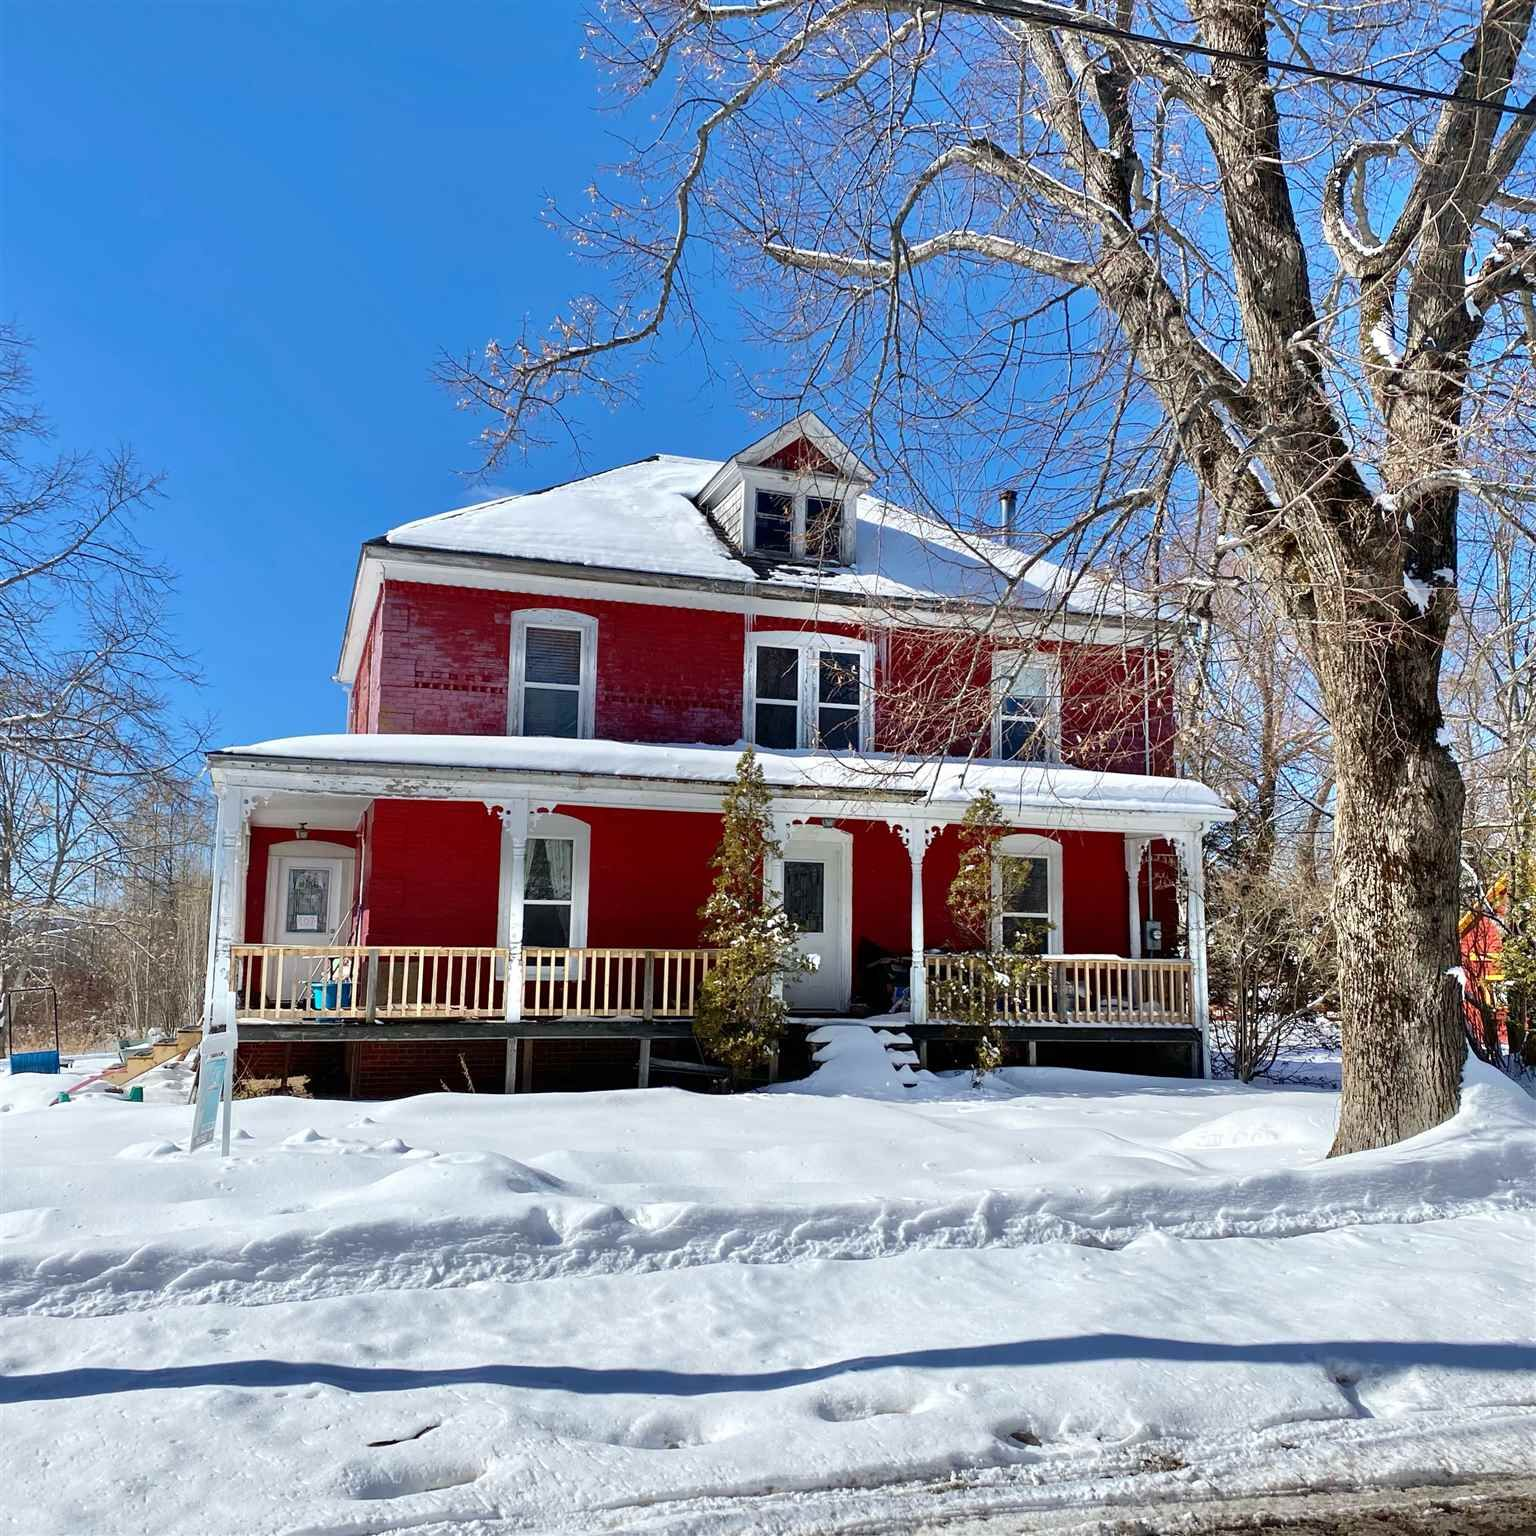 Main Photo: 107 Foster Street in Berwick: 404-Kings County Residential for sale (Annapolis Valley)  : MLS®# 202103136